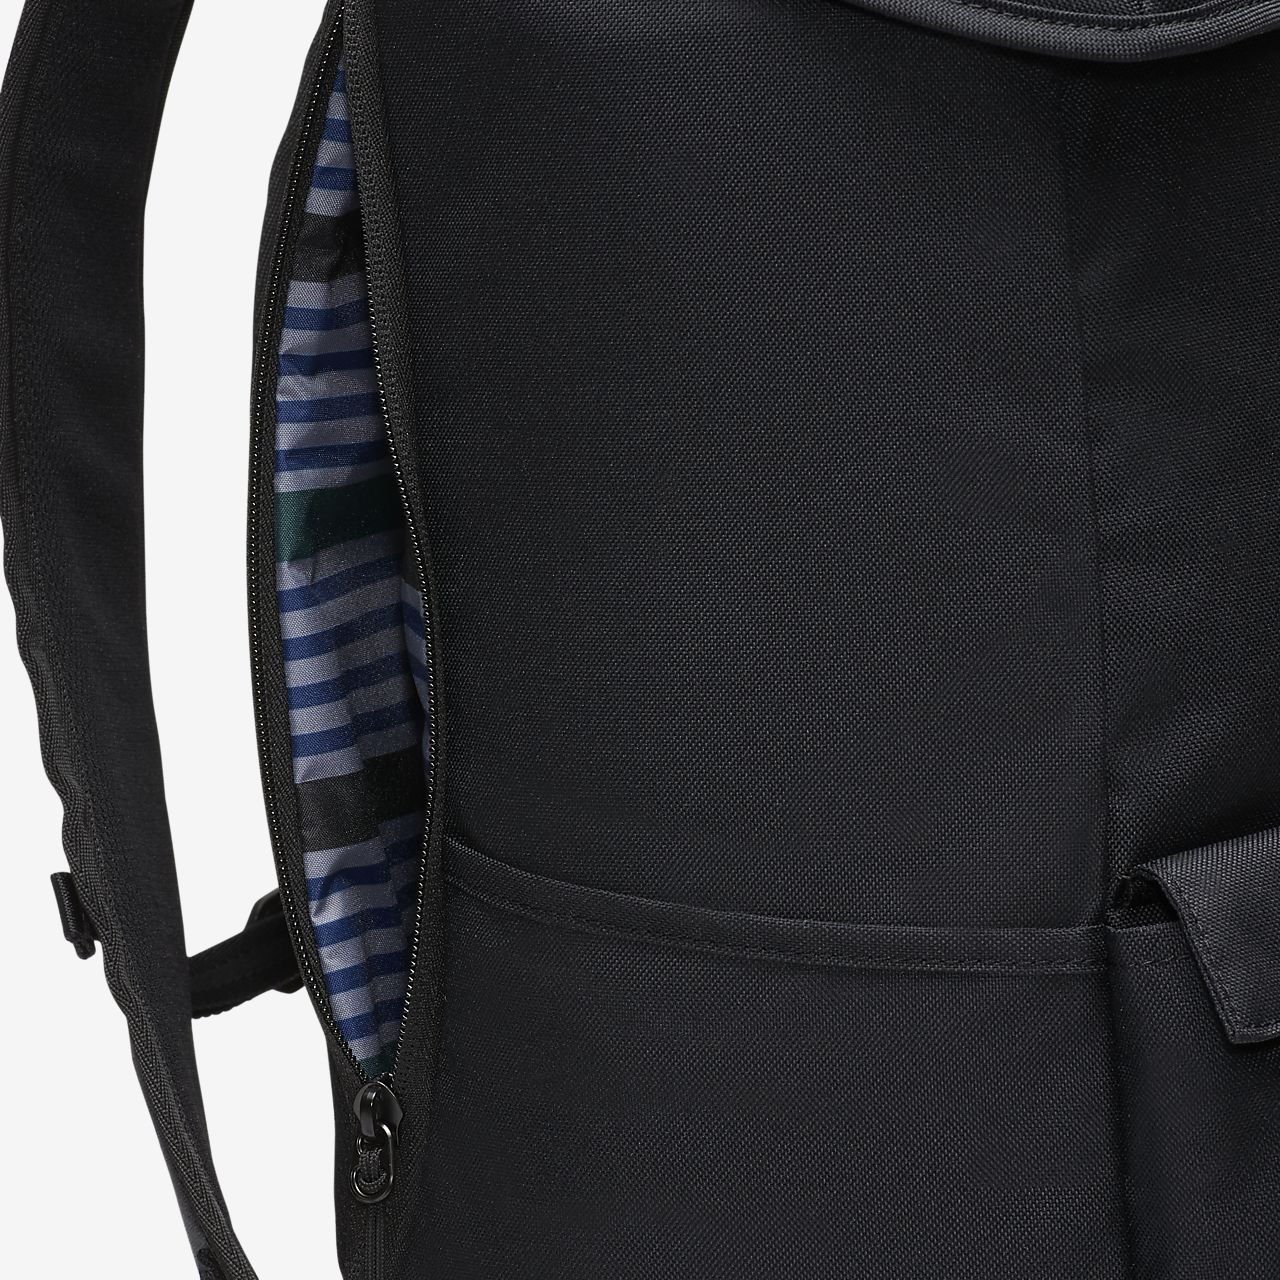 45d51c3207 Low Resolution Nike SB Stockwell Backpack Nike SB Stockwell Backpack